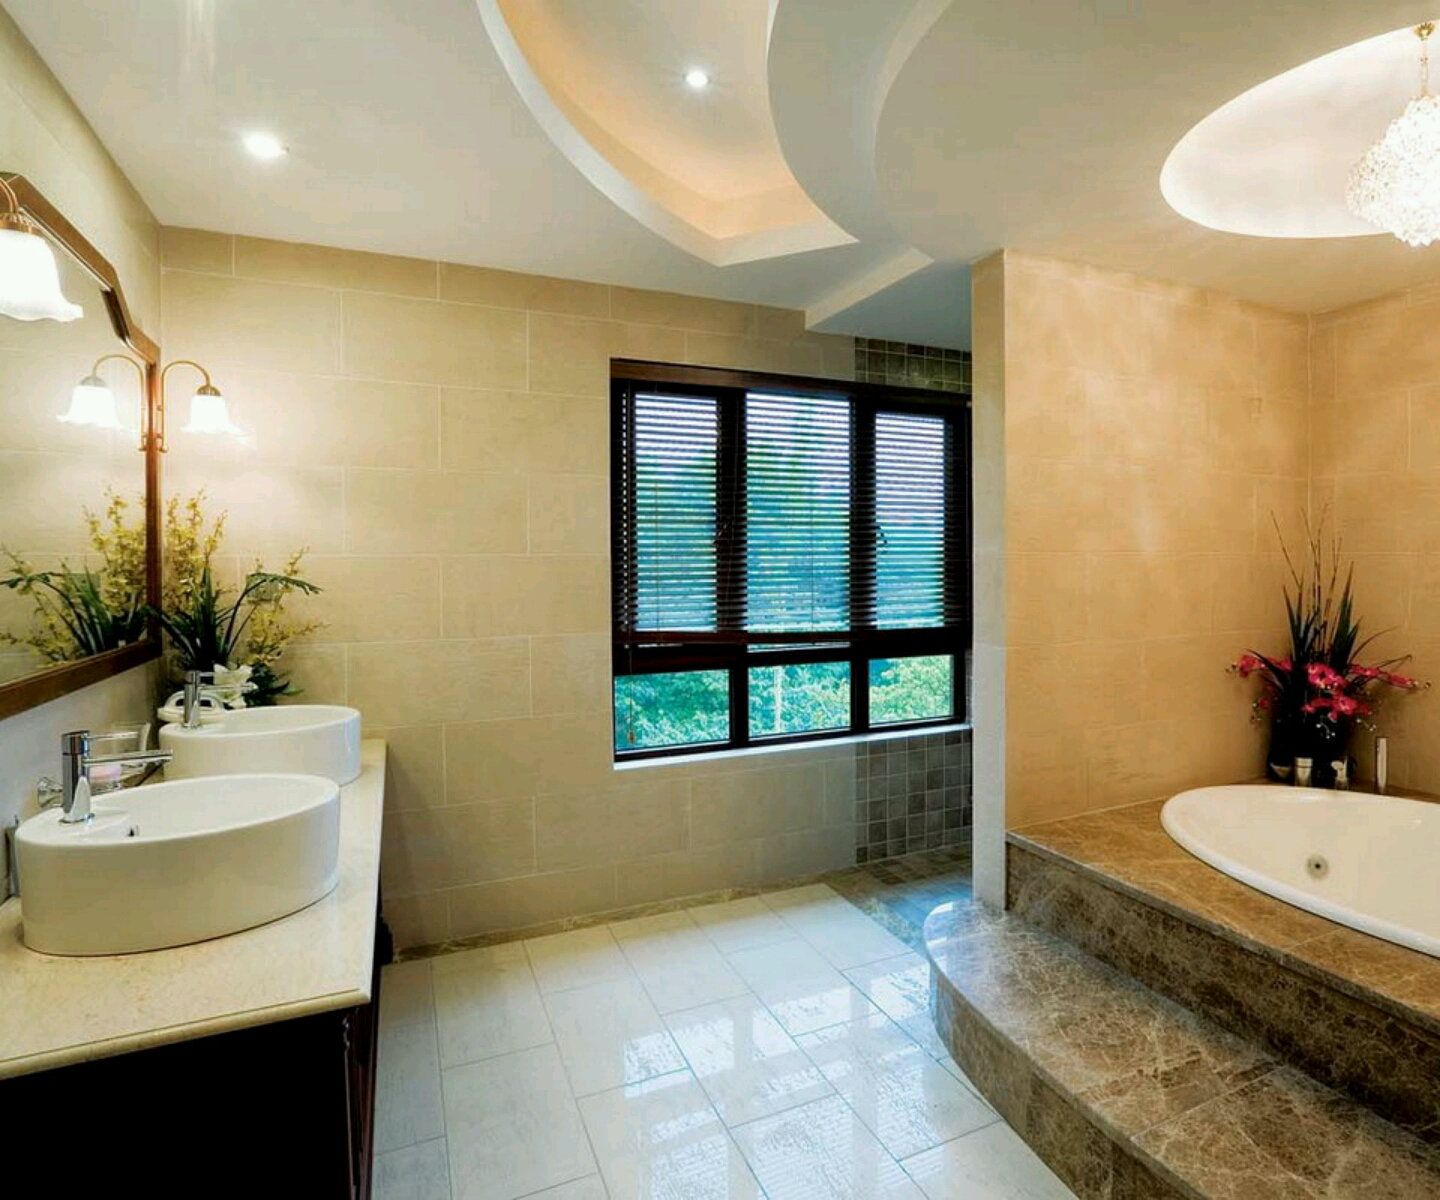 New home designs latest ultra modern washroom designs ideas for Modern washroom designs